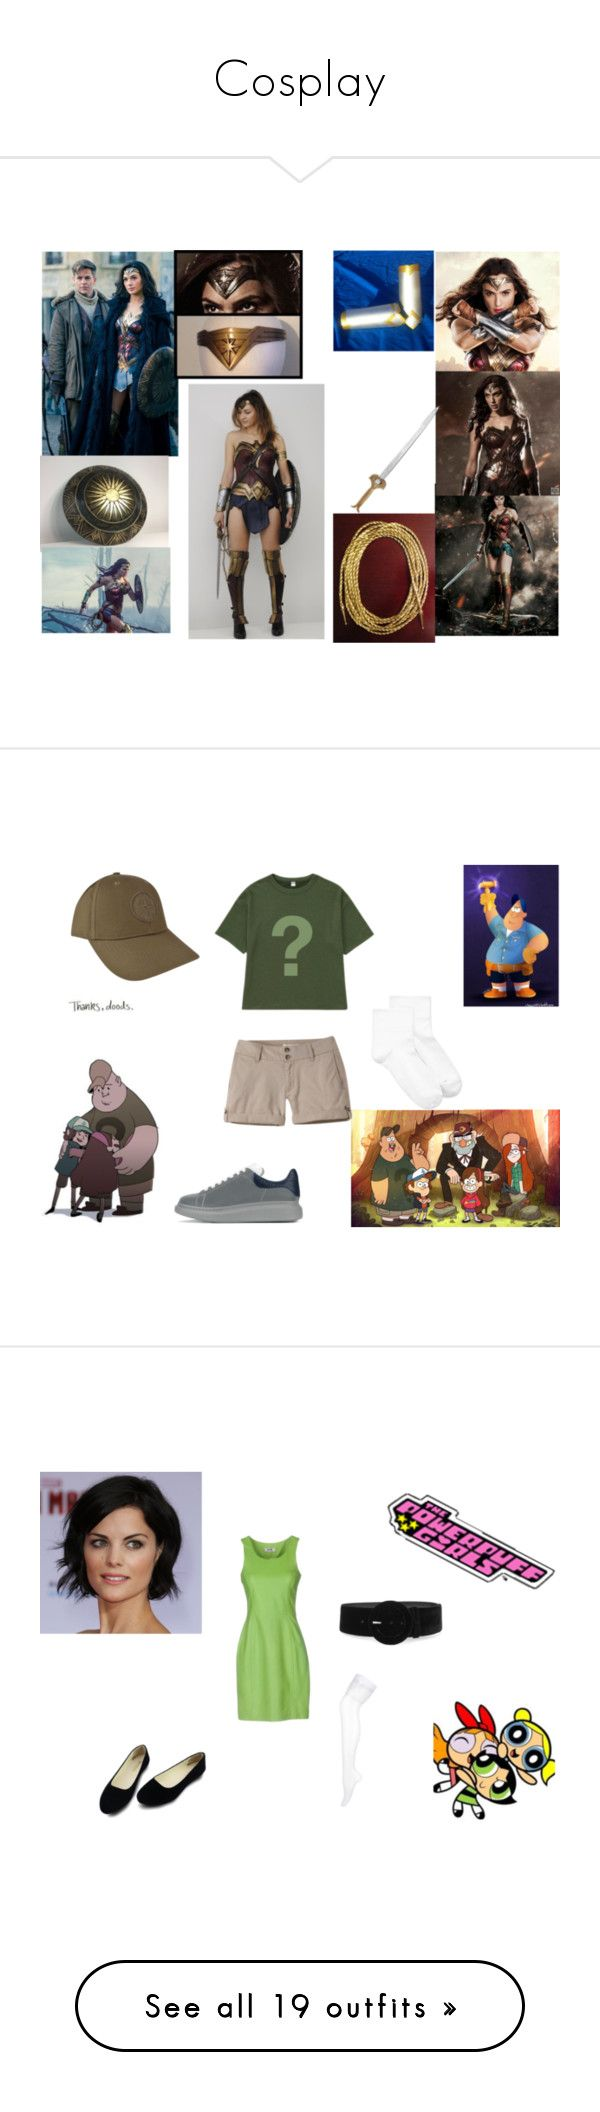 """Cosplay"" by topazwarrior ❤ liked on Polyvore featuring Disney, Uniqlo, Hue, Alexander McQueen, STONE ISLAND, Moschino Cheap & Chic, Miu Miu, La Perla, Nordstrom and T.U.K."